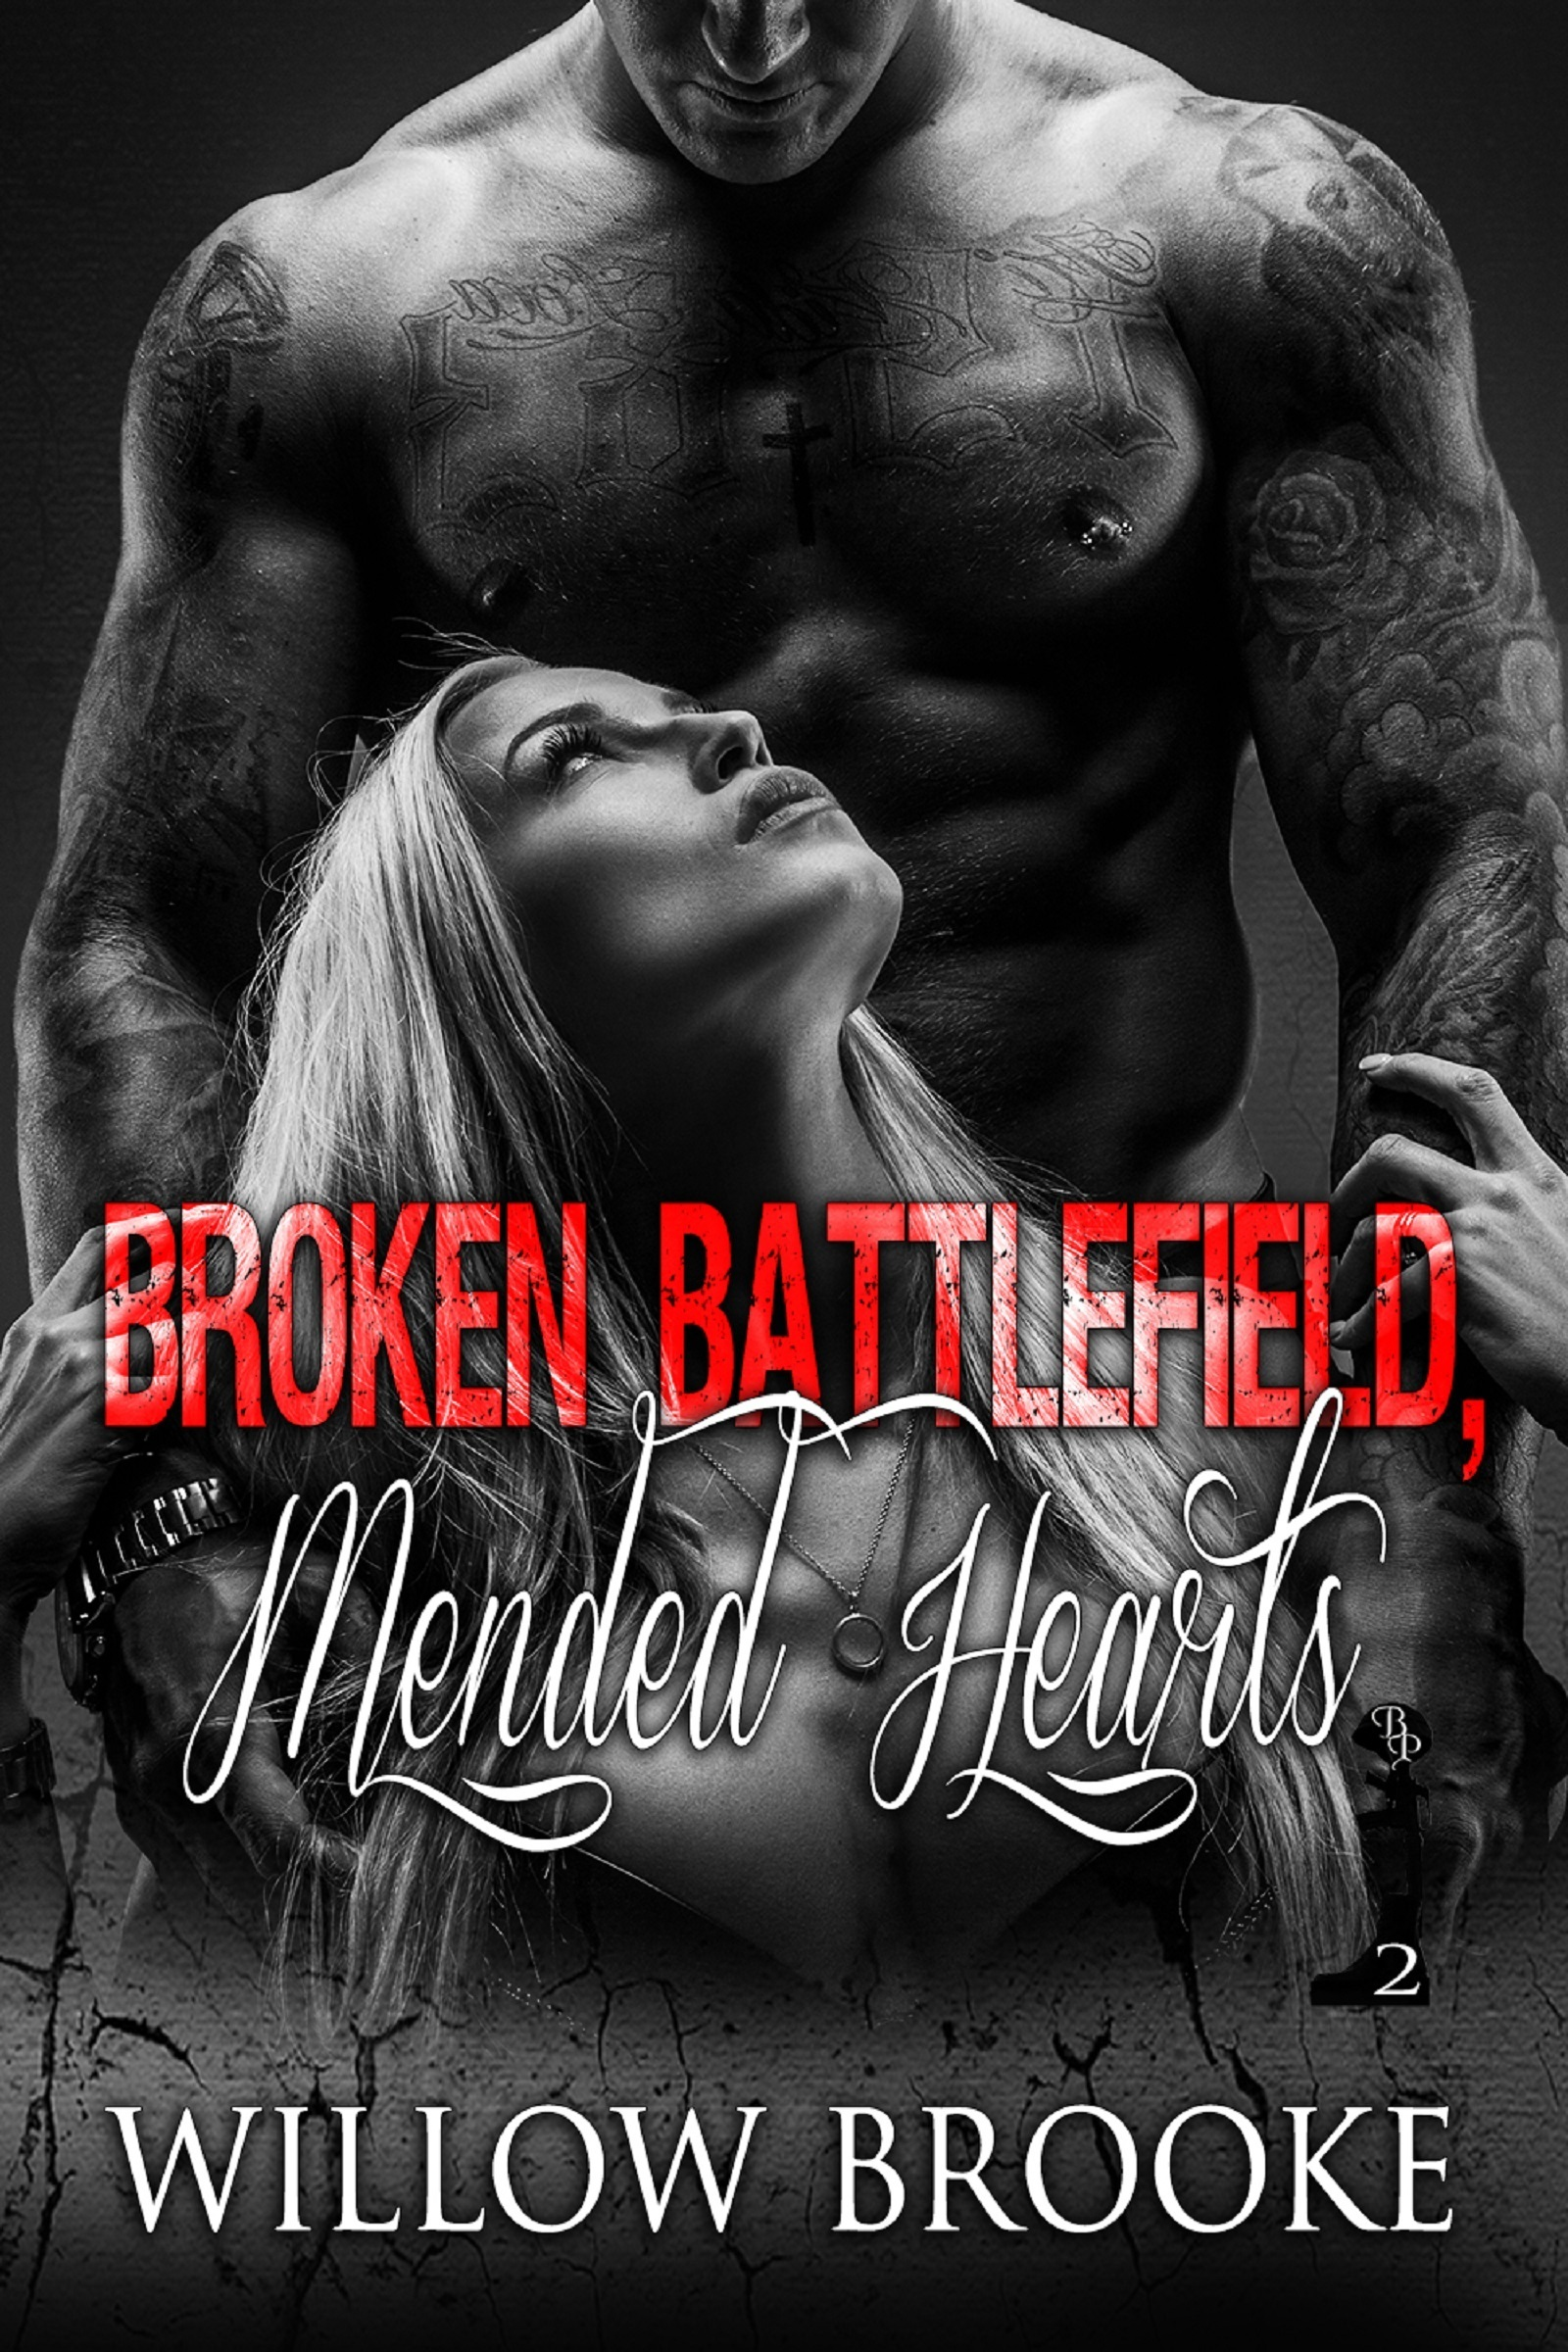 Broken Battlefield, Mended Hearts Willow Brooke